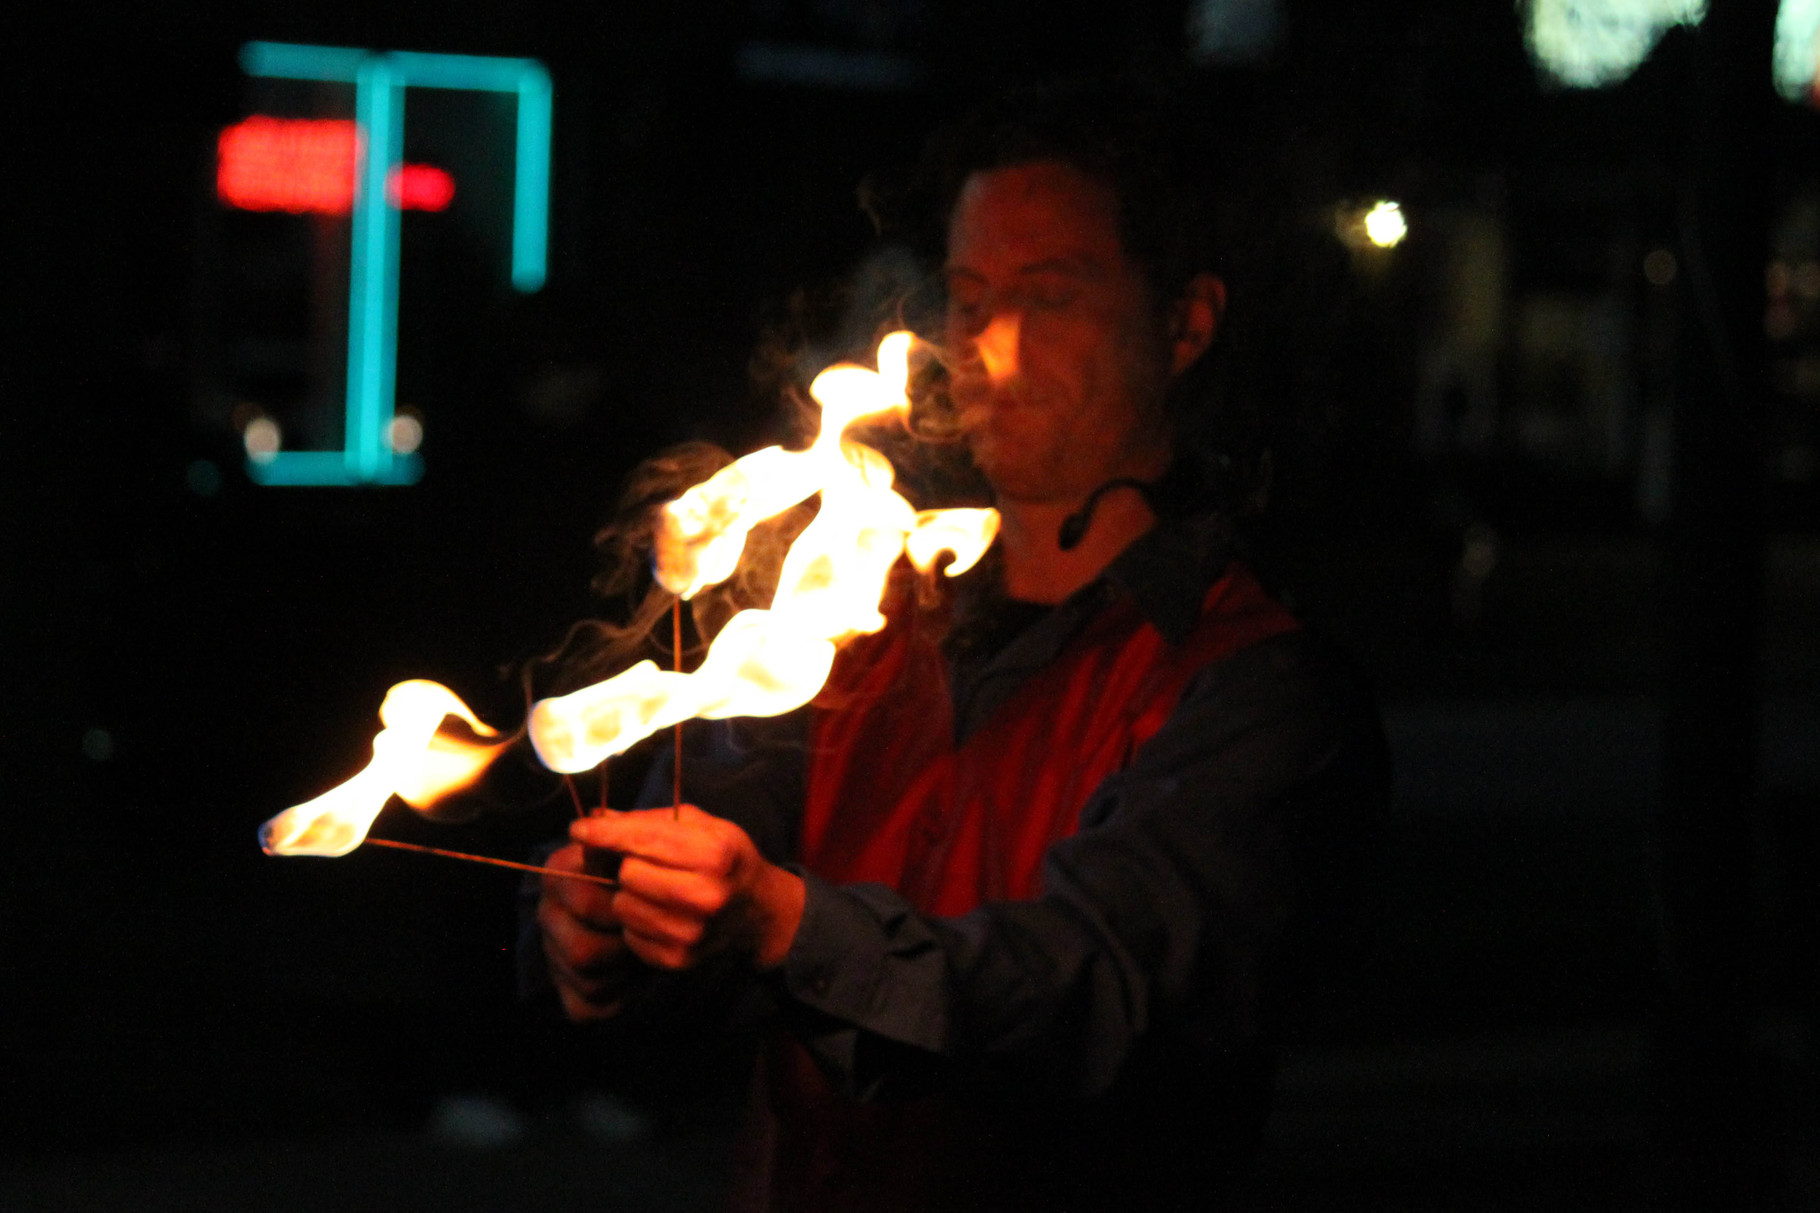 Incredible Larry wows the crowd with fire-eating tricks as part of the Festival of Lights